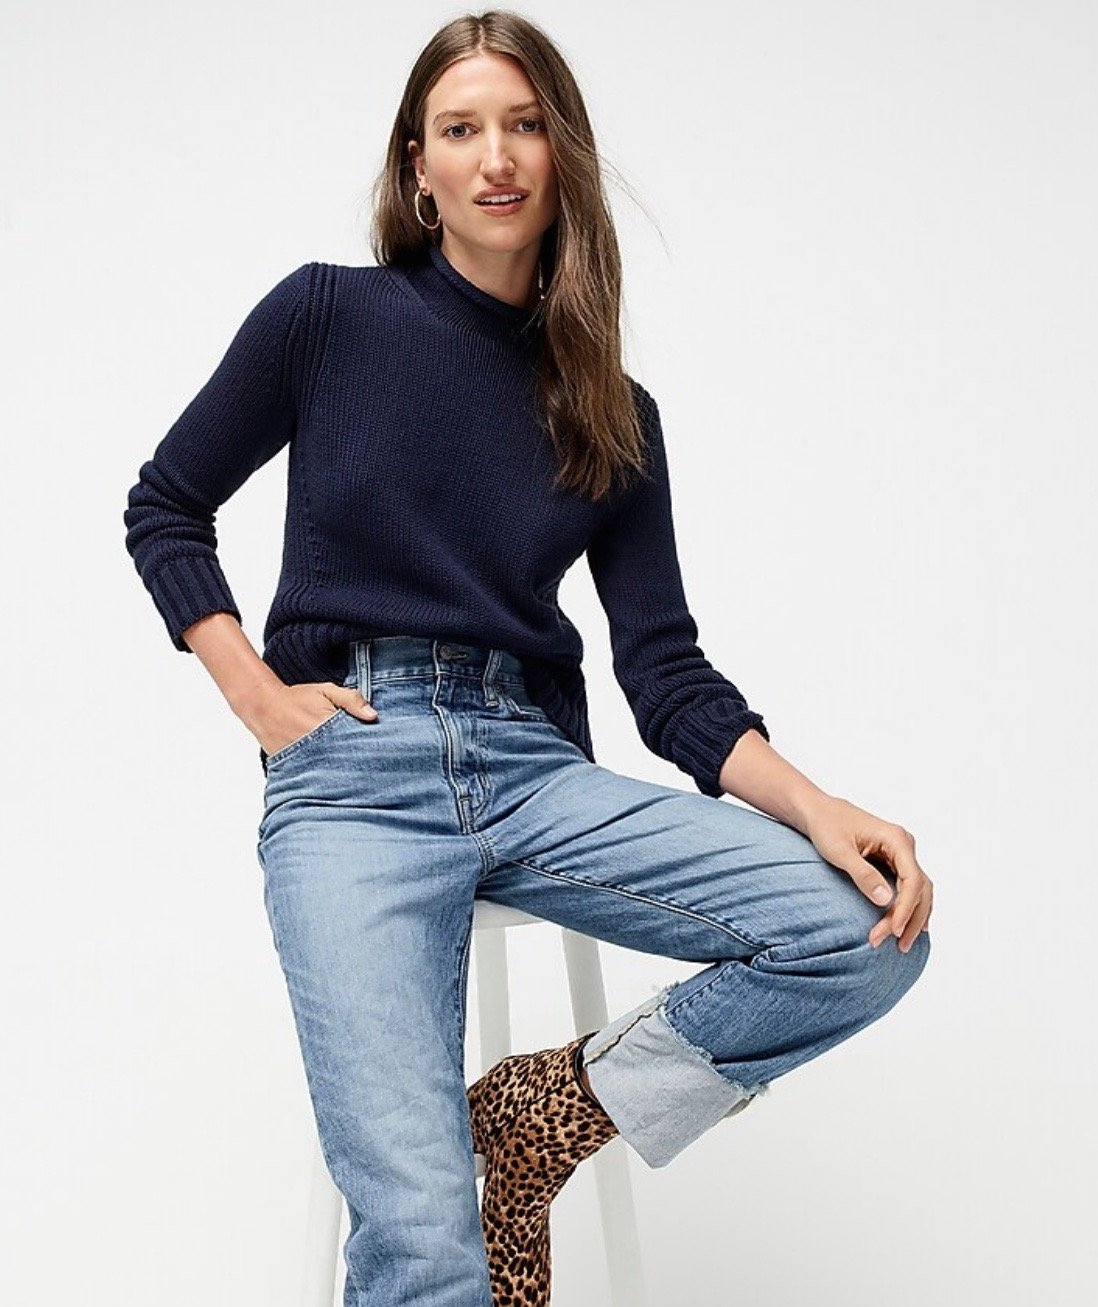 jcrew 1988 rollneck sweater